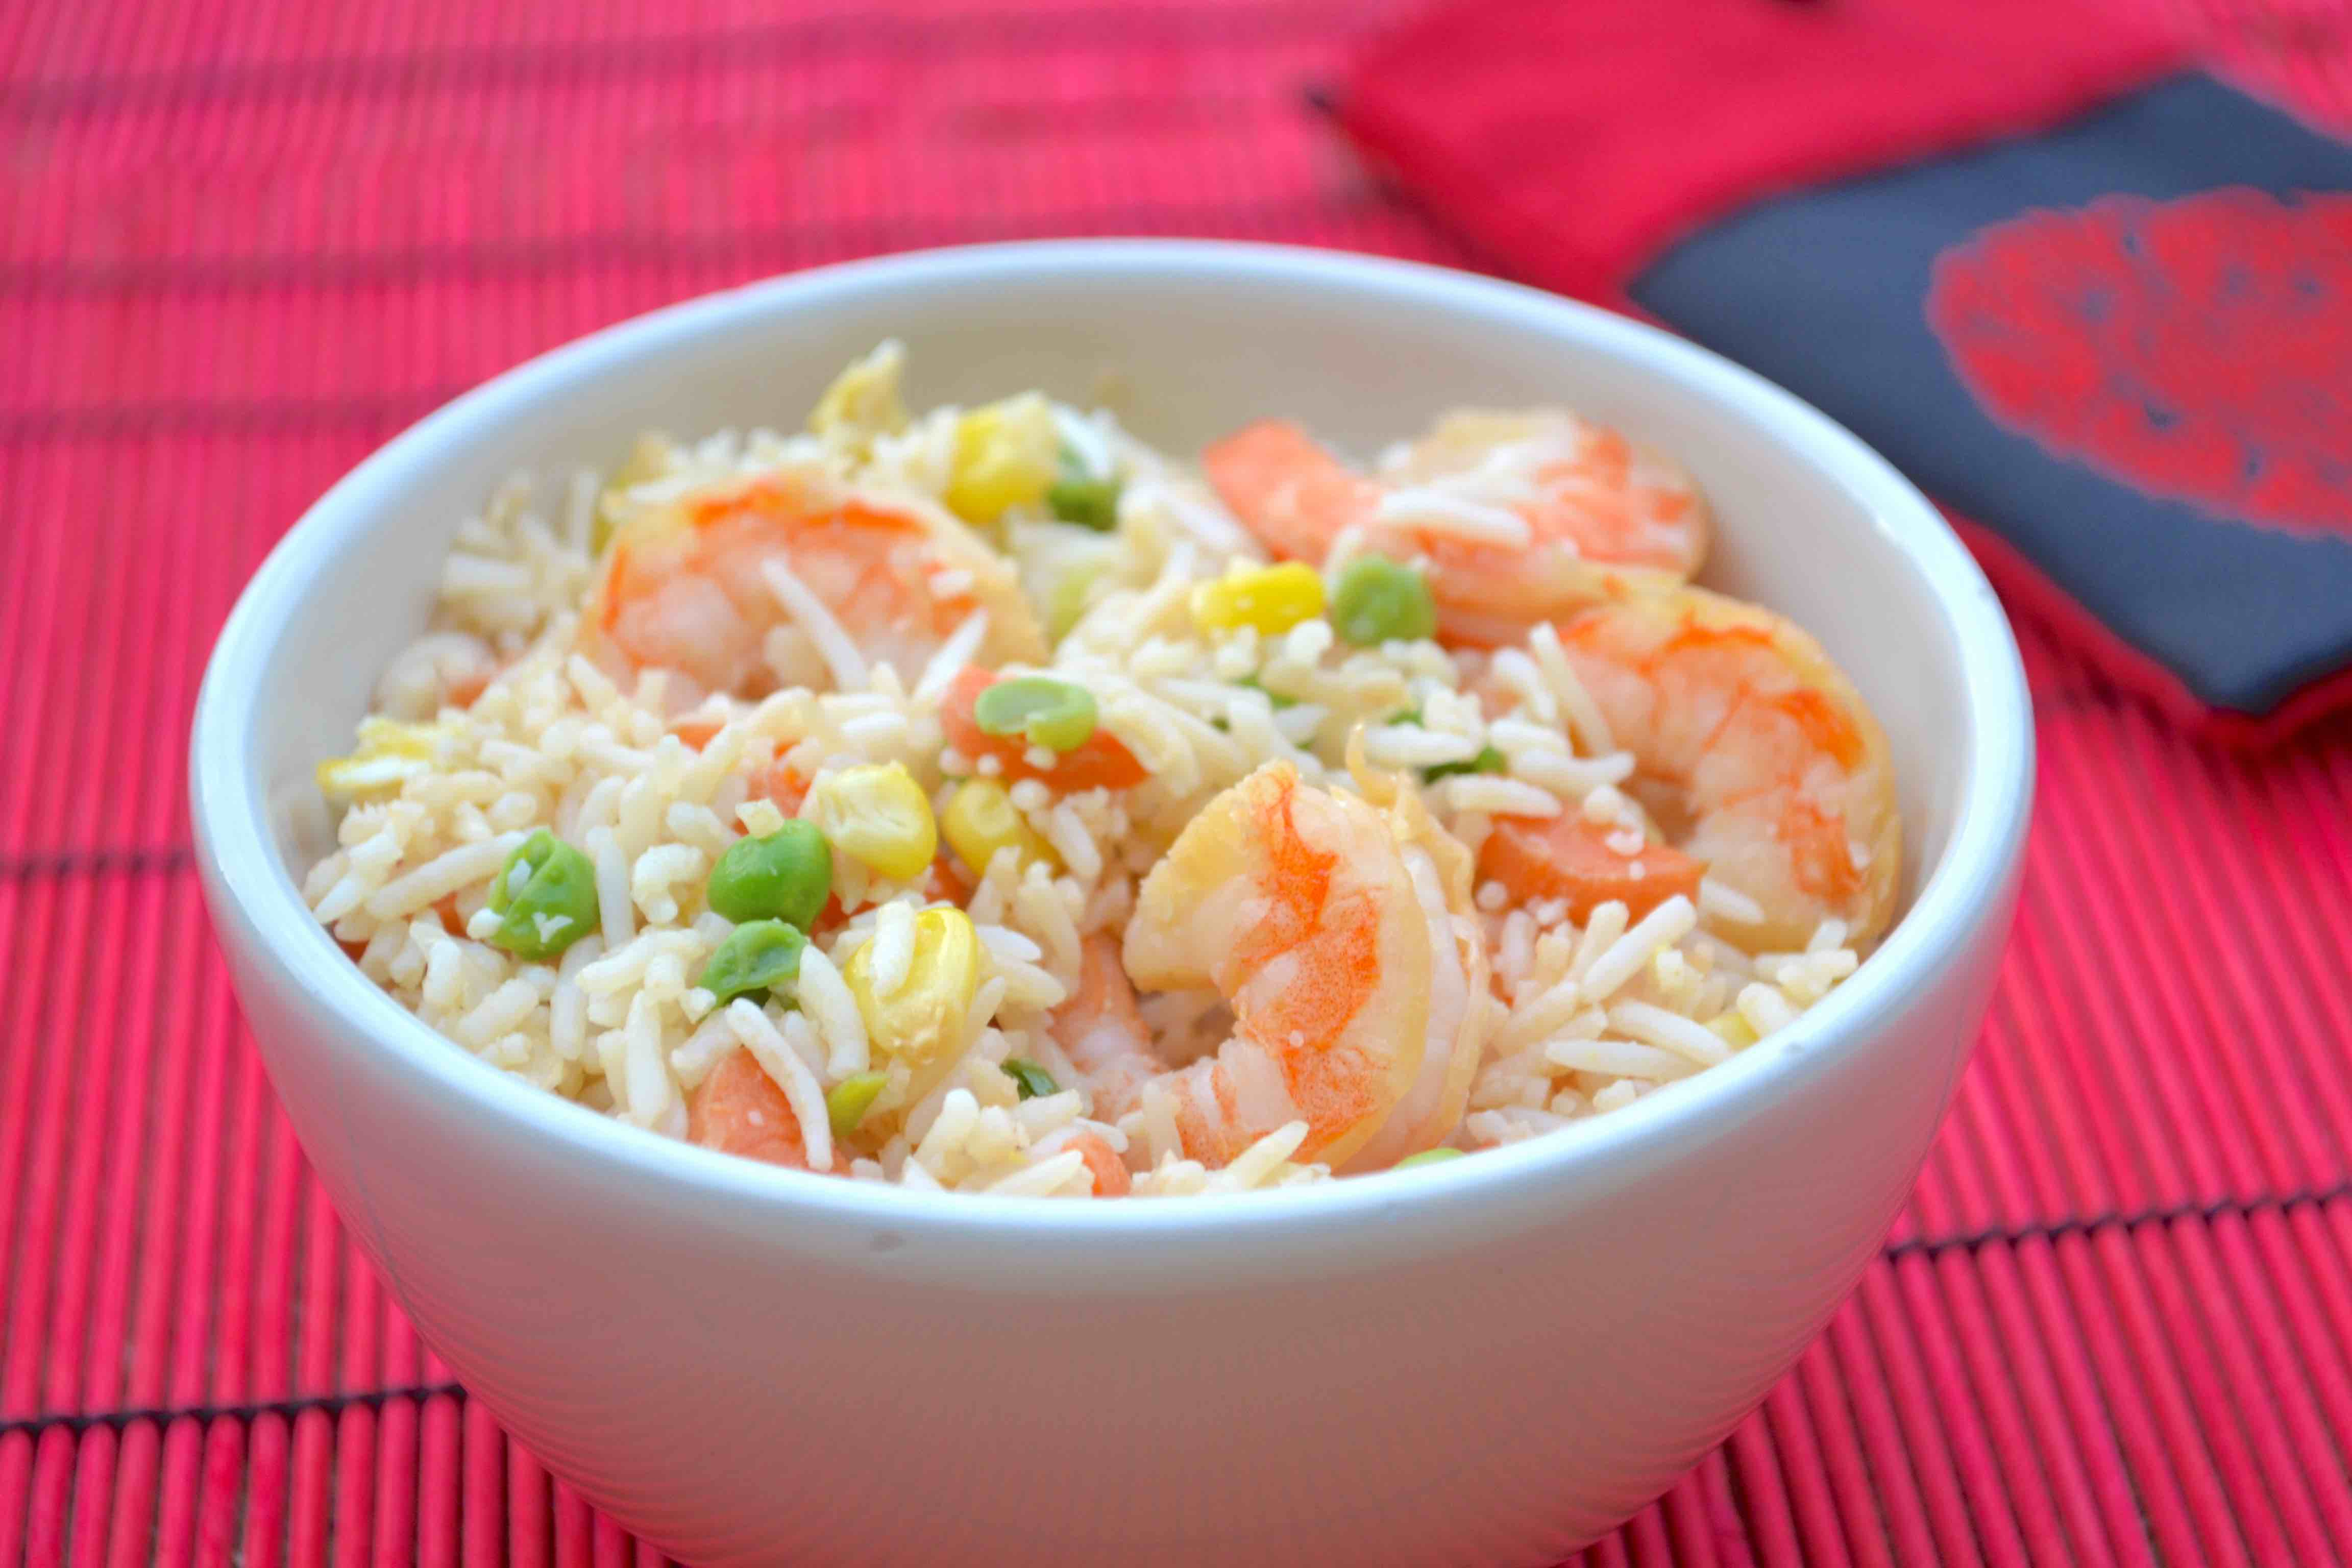 yum shrimp fried rice ingredients 3 cups white rice already cooked ...